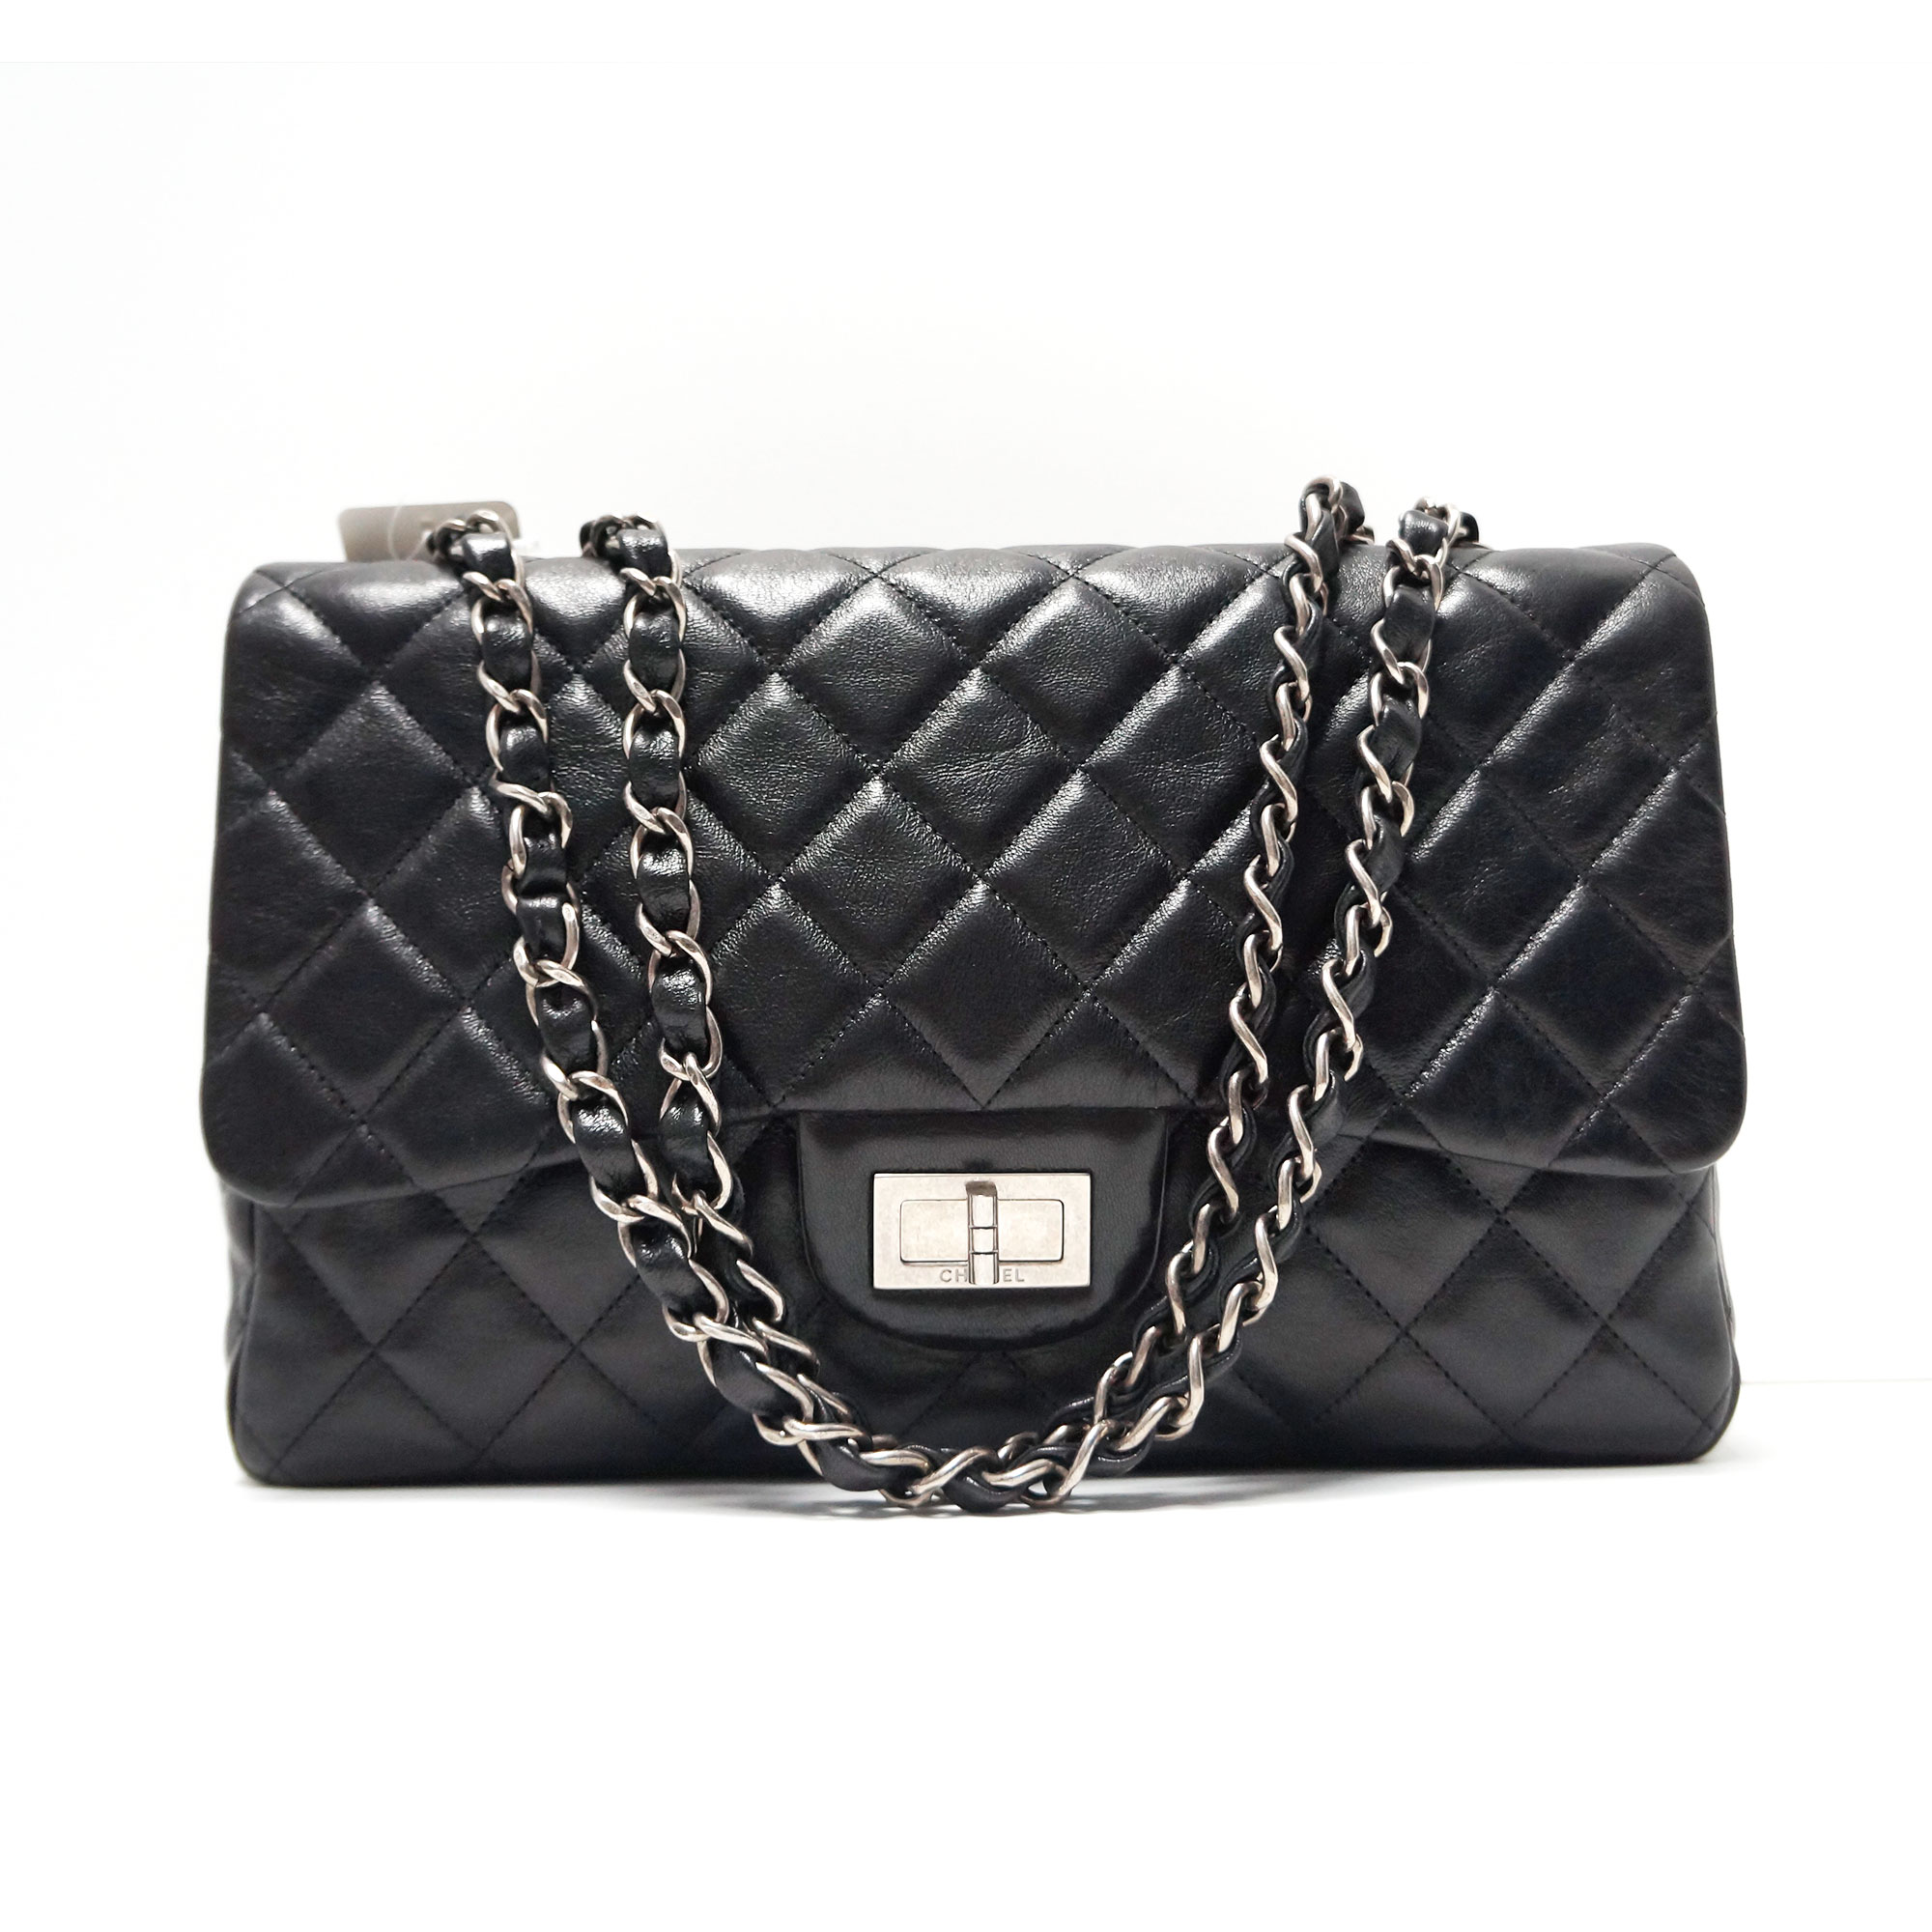 8ed18dc2e7fac6 Chanel Black Leather Jumbo Flap Bag with 2.55 Lock | | My Personal ...